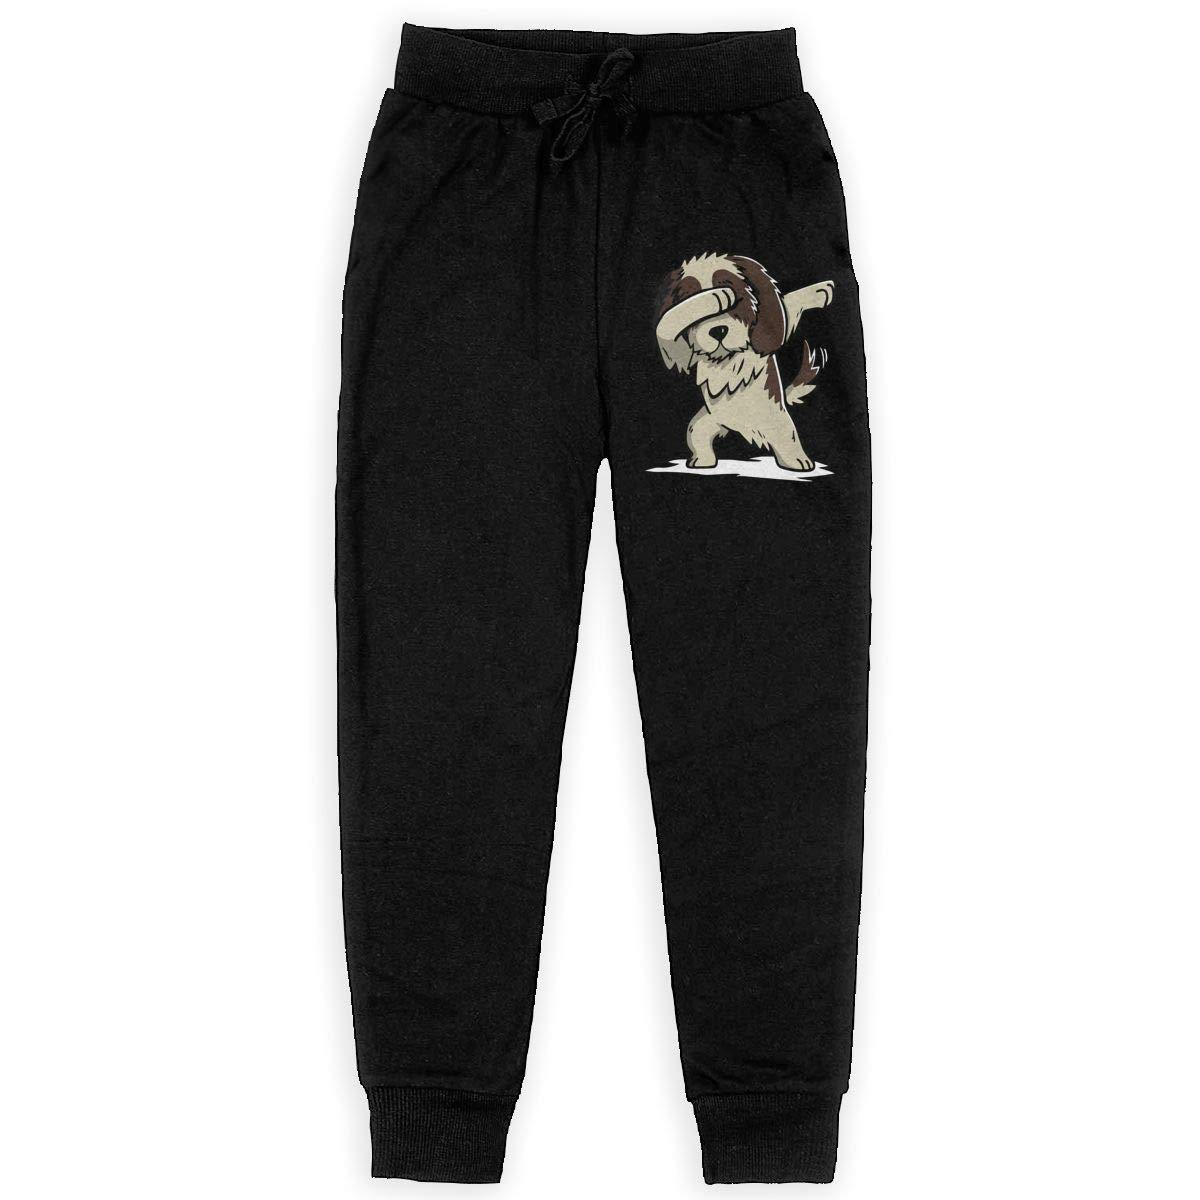 Ultra Soft Dabbing Shih Tzu Cotton Long Sweatpants for Youth Ji88pX@ Lounge Pants for Men